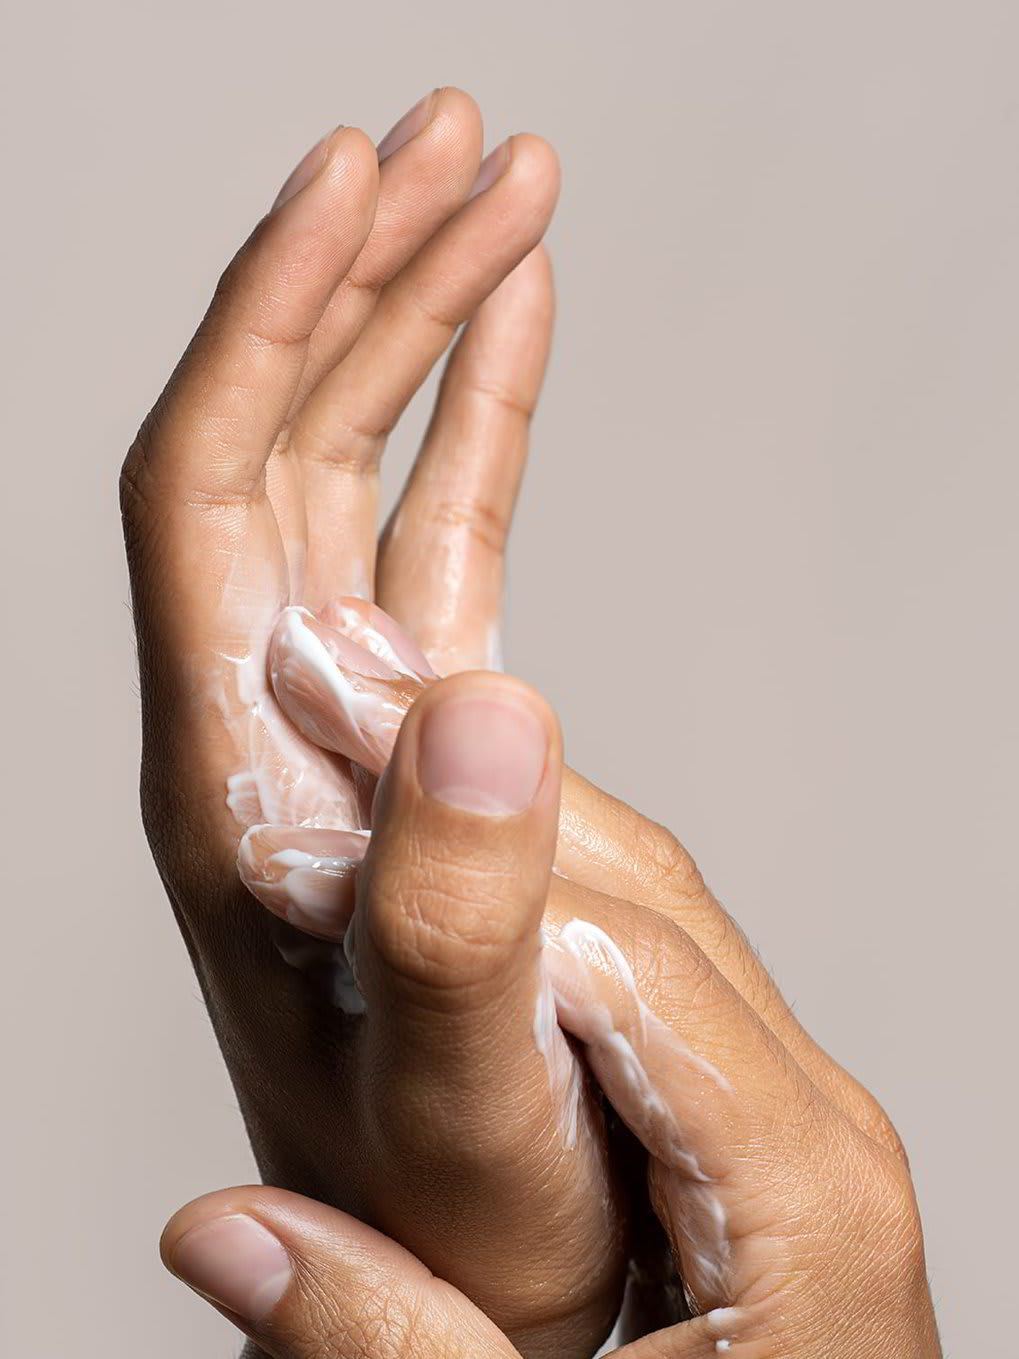 A closeup of a man applying cream to his hands